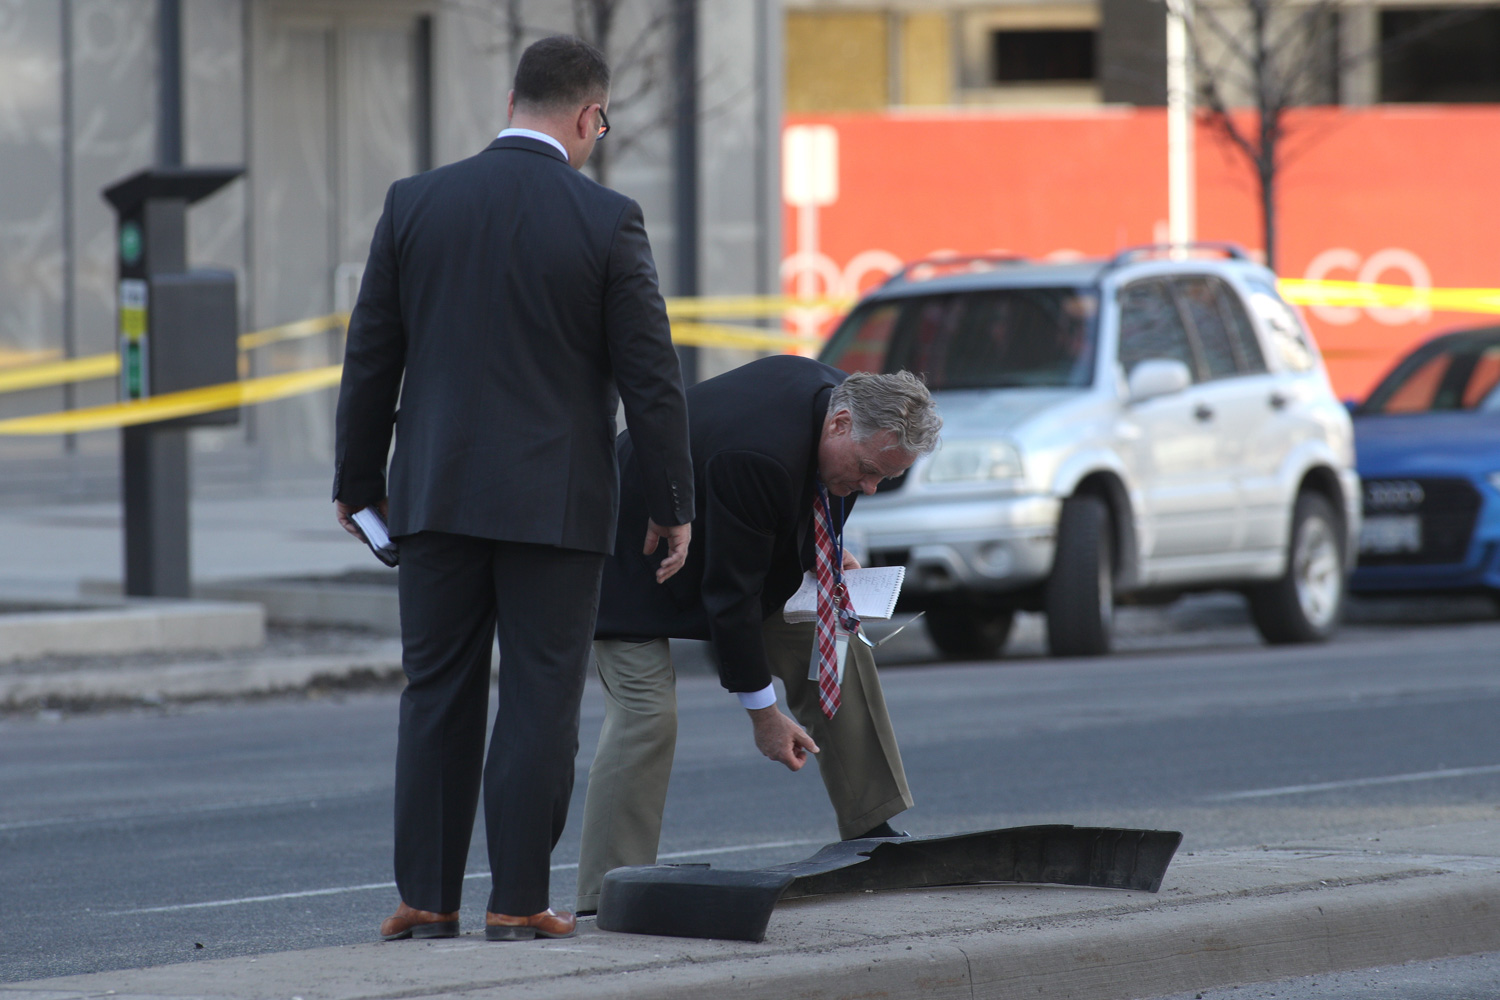 <div class='meta'><div class='origin-logo' data-origin='none'></div><span class='caption-text' data-credit='Lars Hagberg/AFP/Getty Images'>Forensic police officers look a car bumper after a truck drove up on the curb and hit several pedestrians in Toronto, Ontario, on April 23, 2018.</span></div>